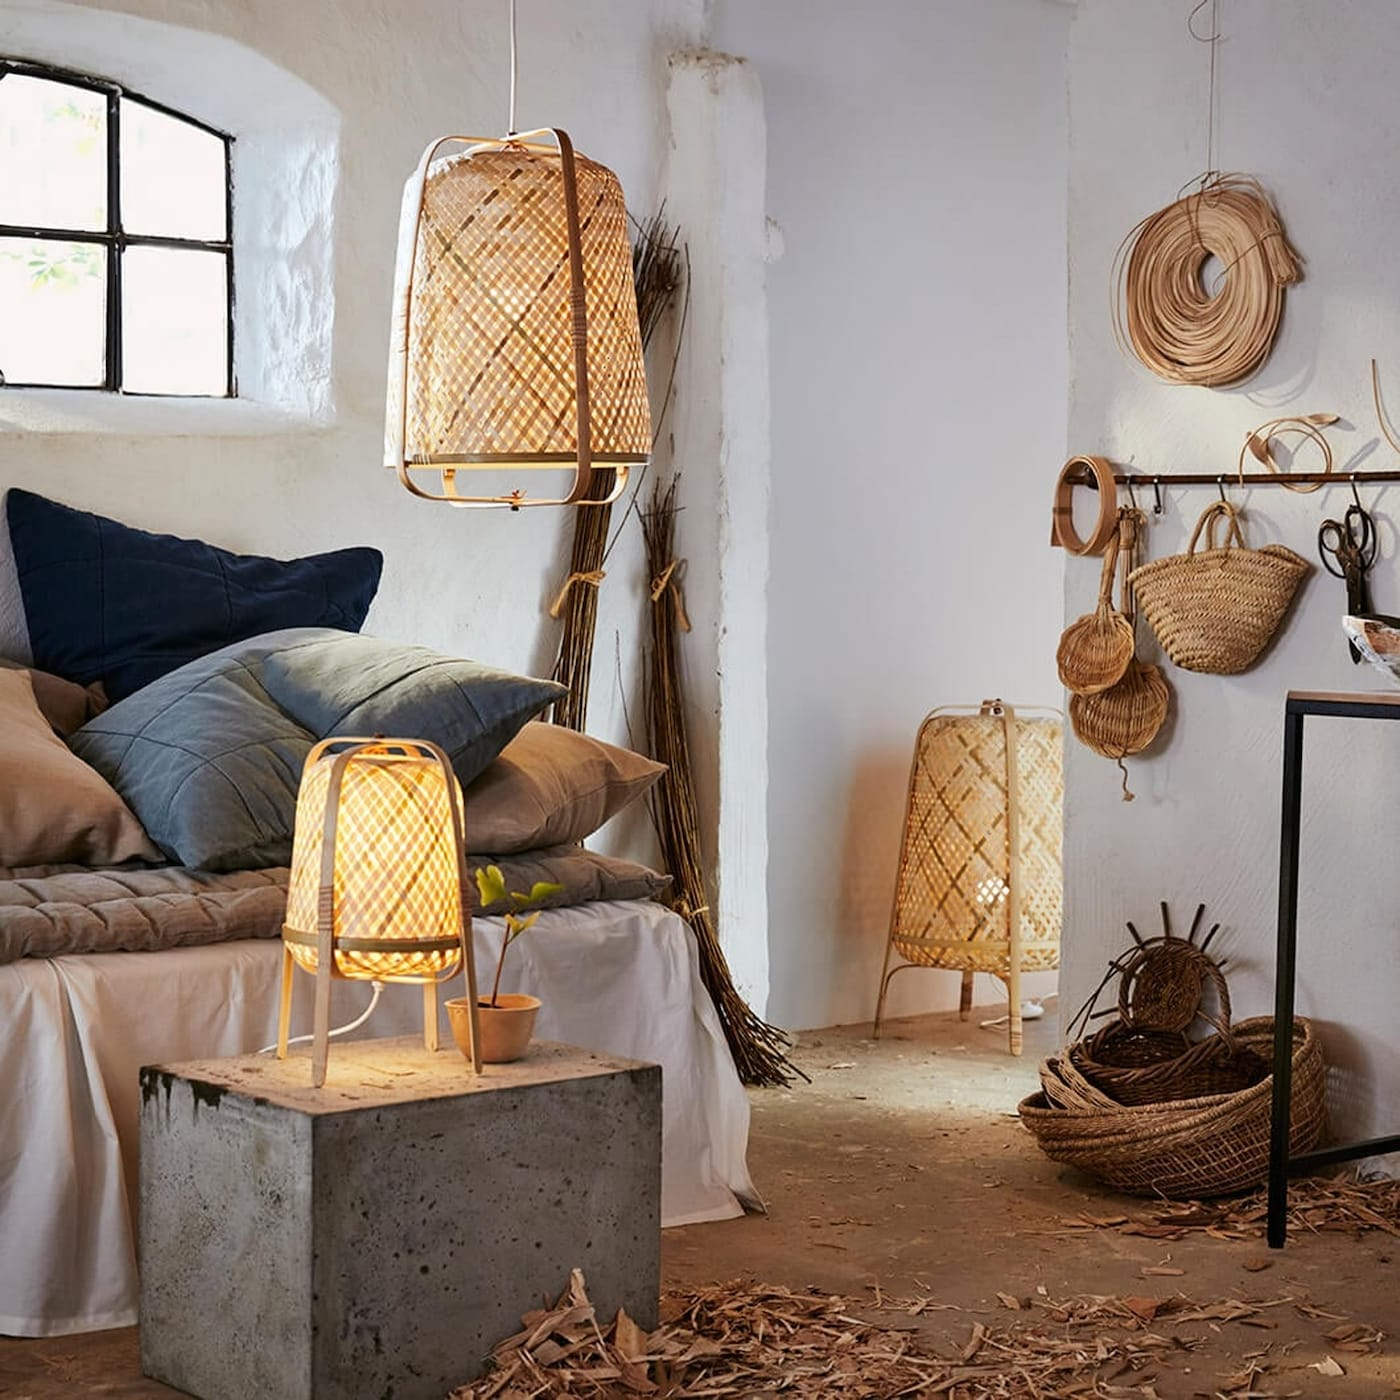 Living room with table lamp, floor lamp and ceiling lamp made of bamboo